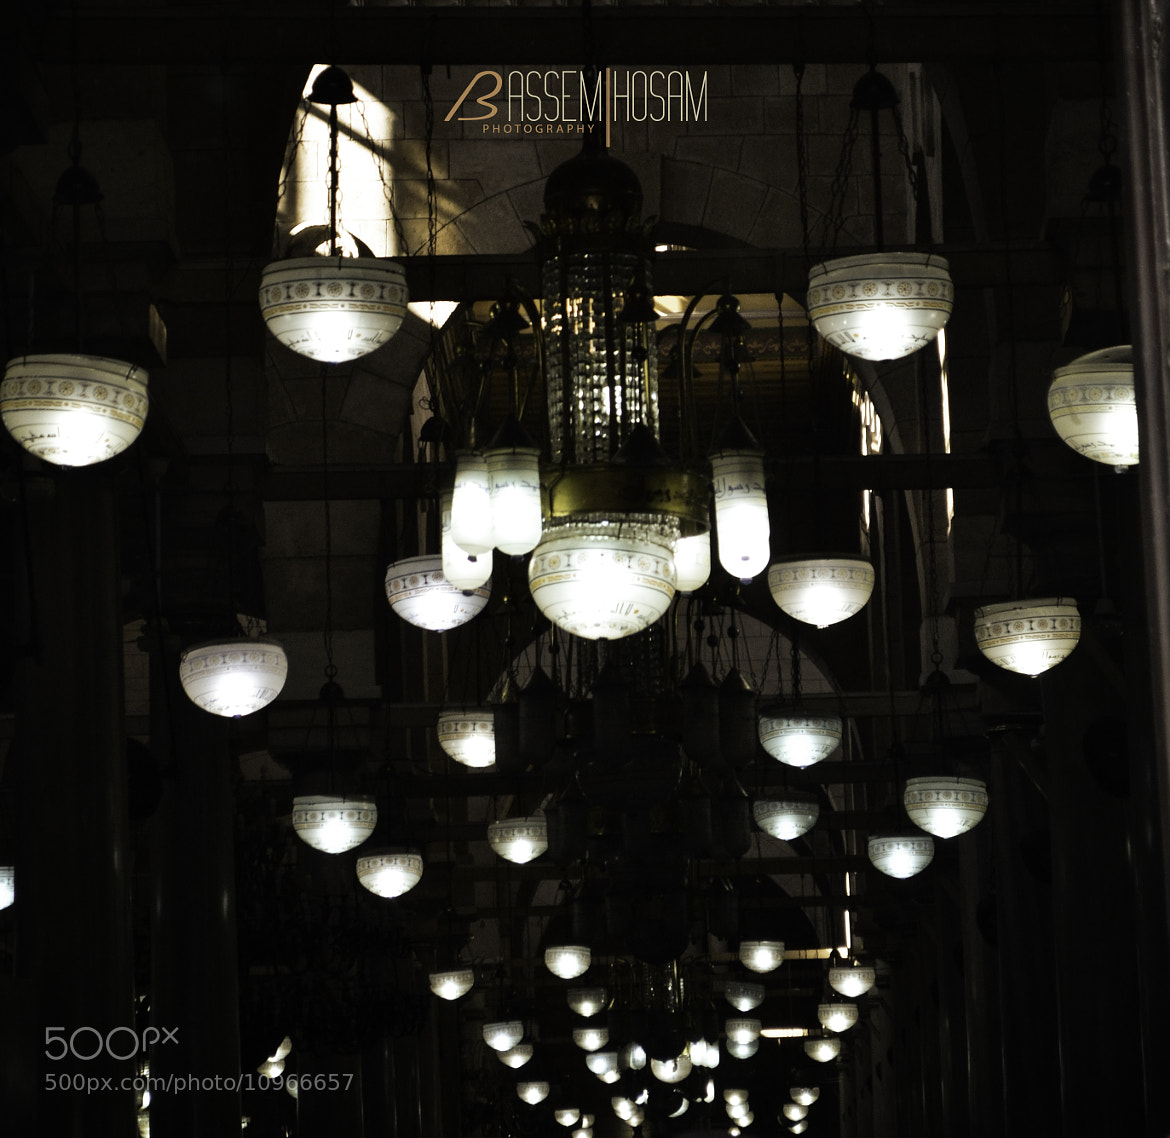 Photograph Lighting  by Bassem Hosam on 500px